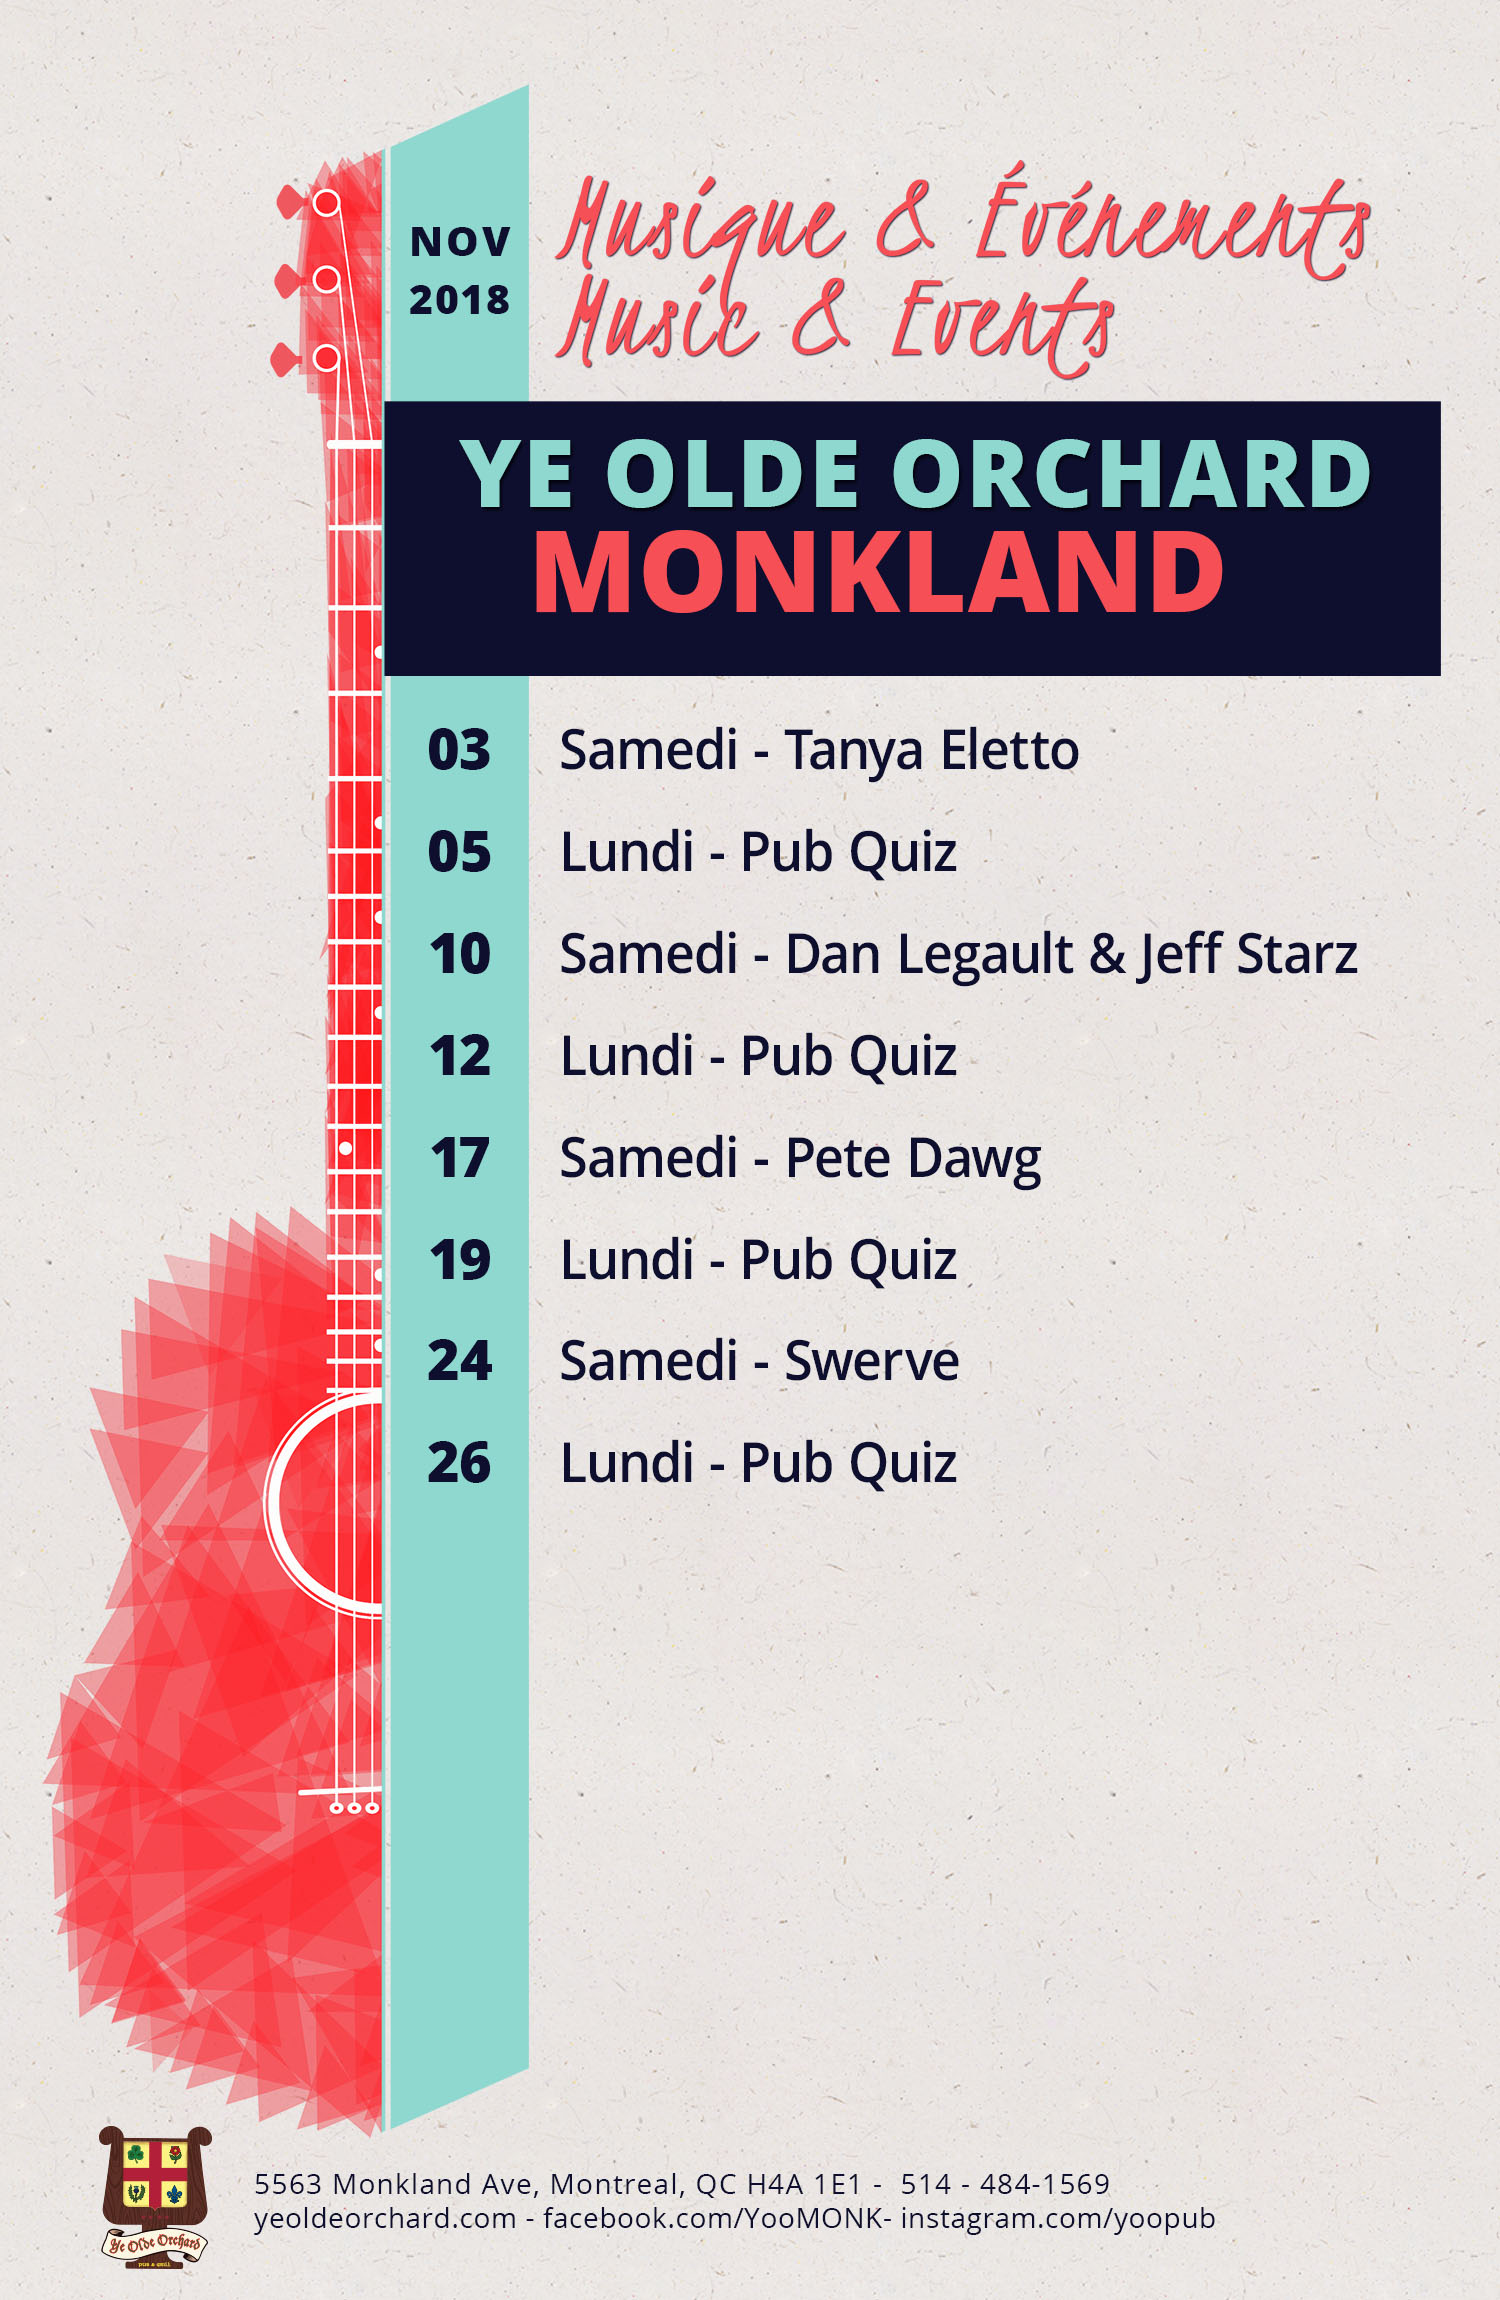 ye-olde-orchard-pub-music-and-events-calendar-Monkland-NOV